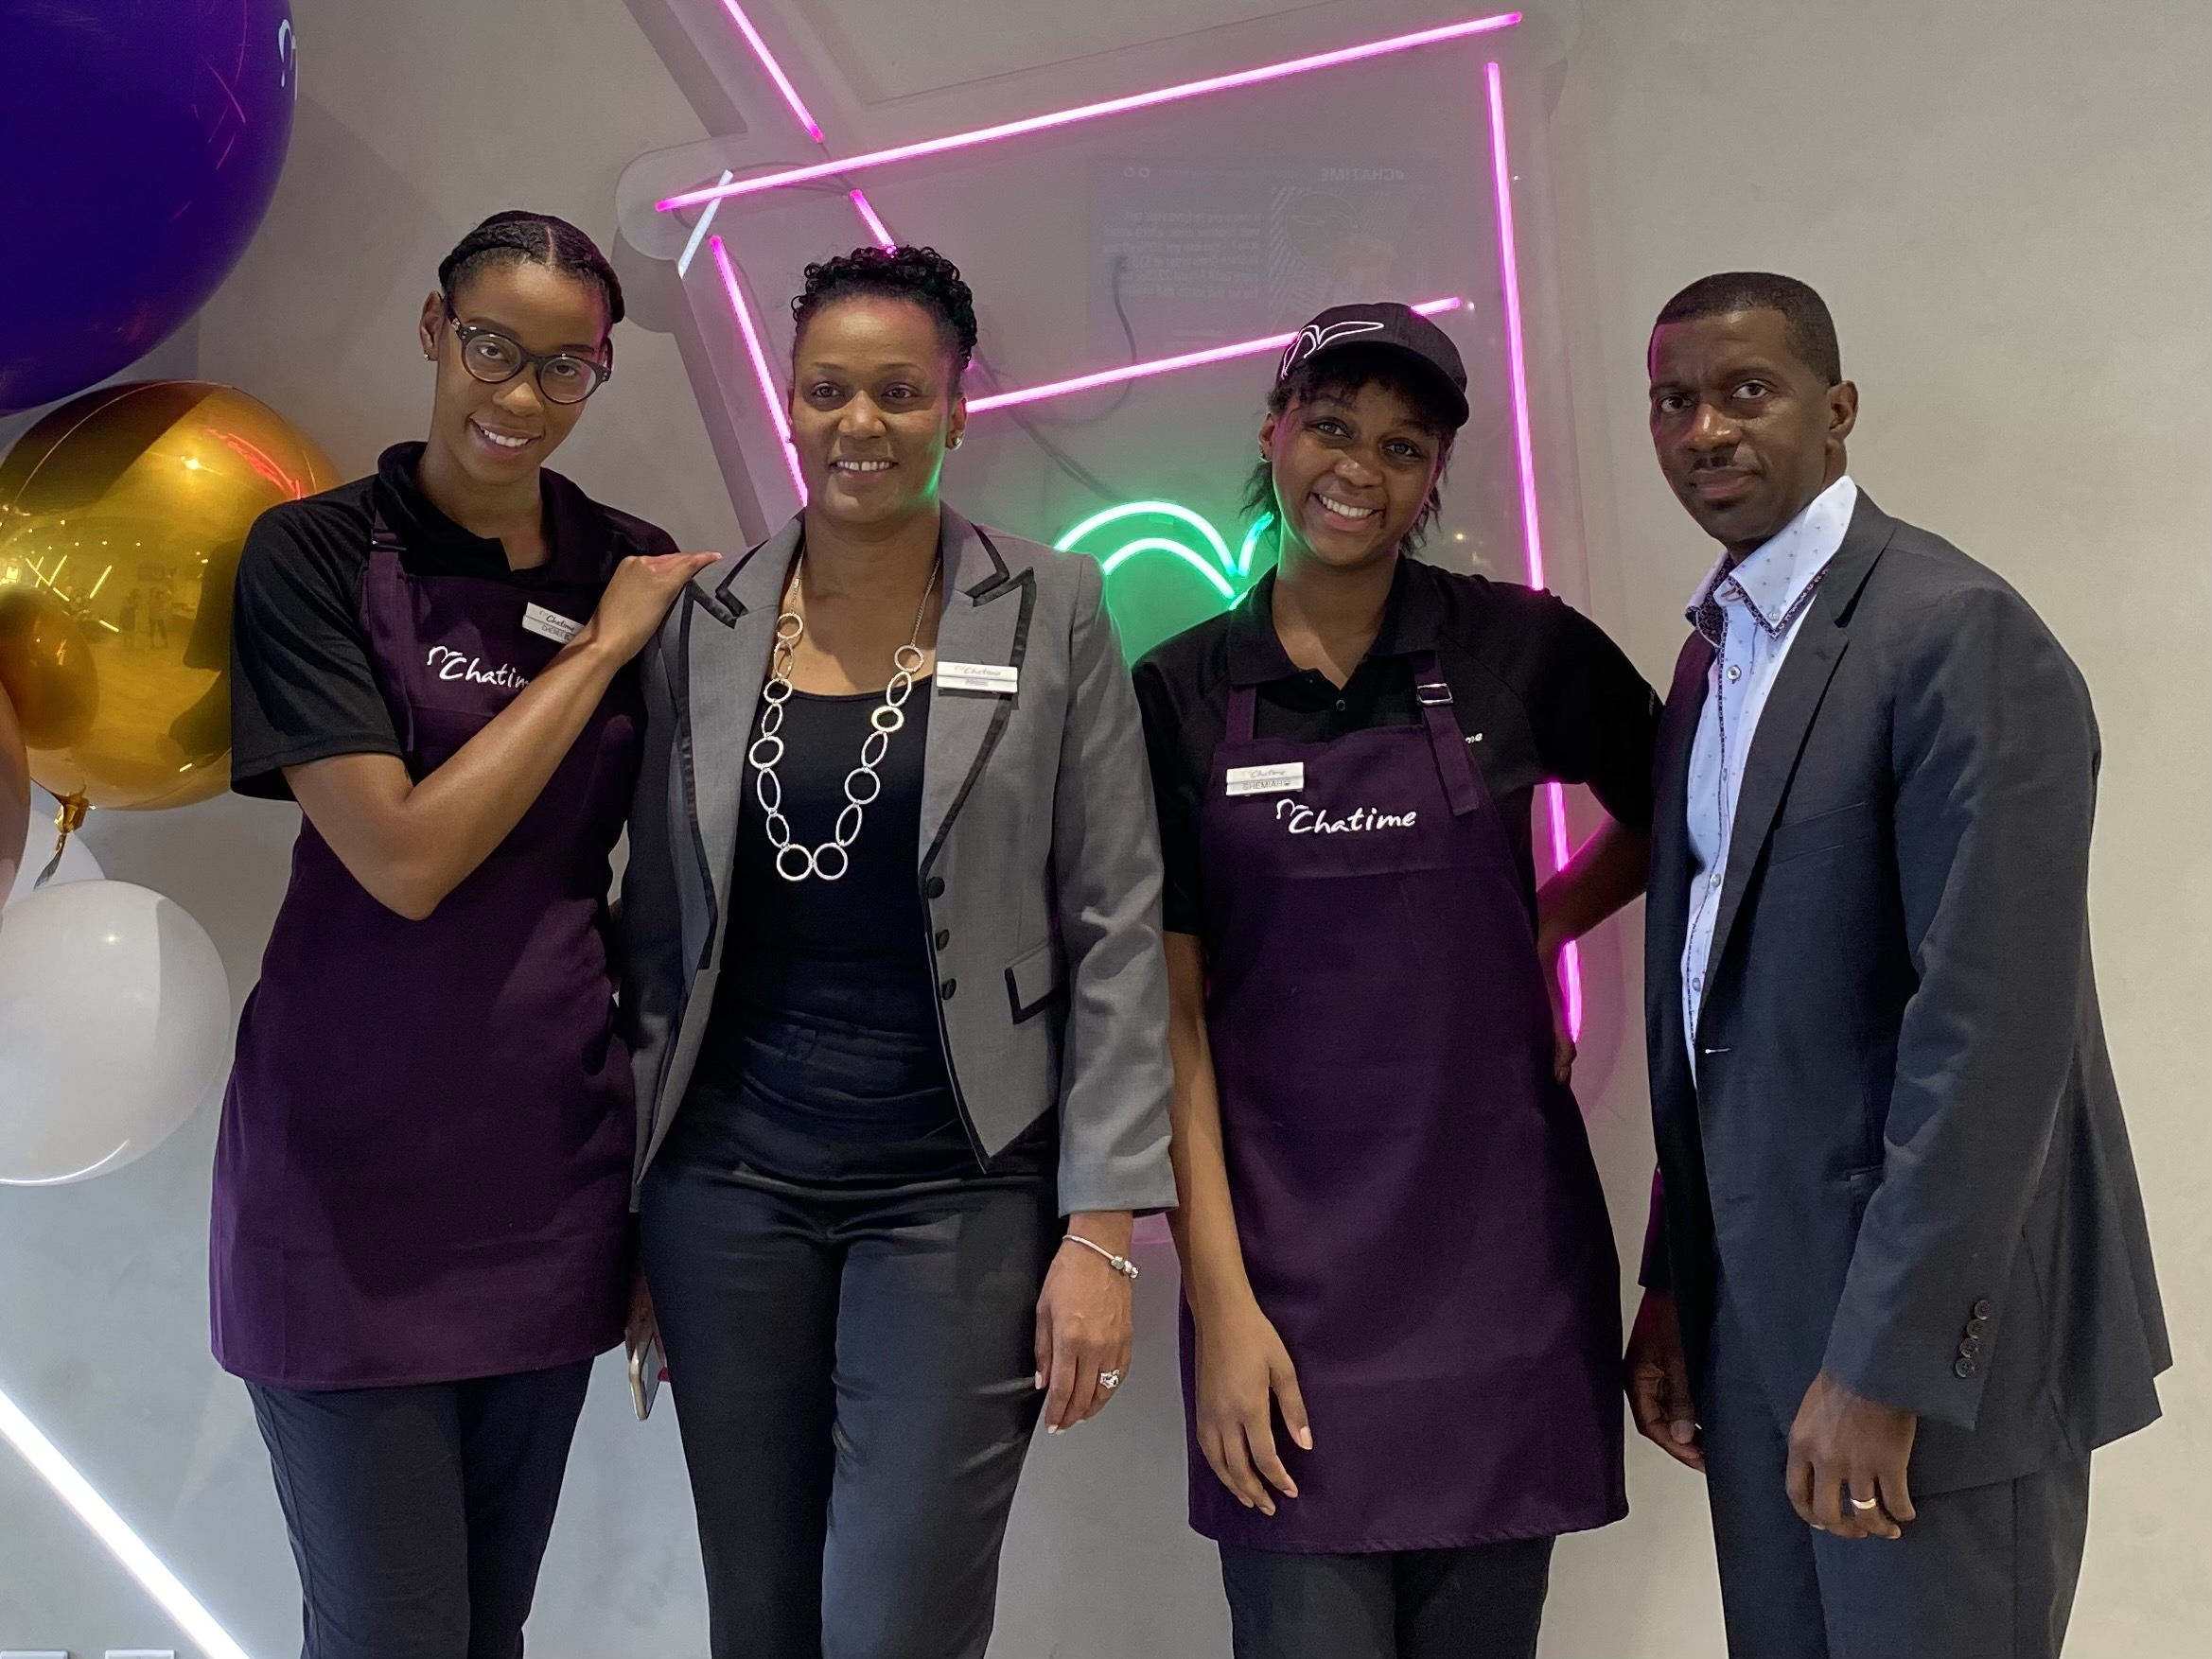 Chatime owners Dovelin, Allison and family